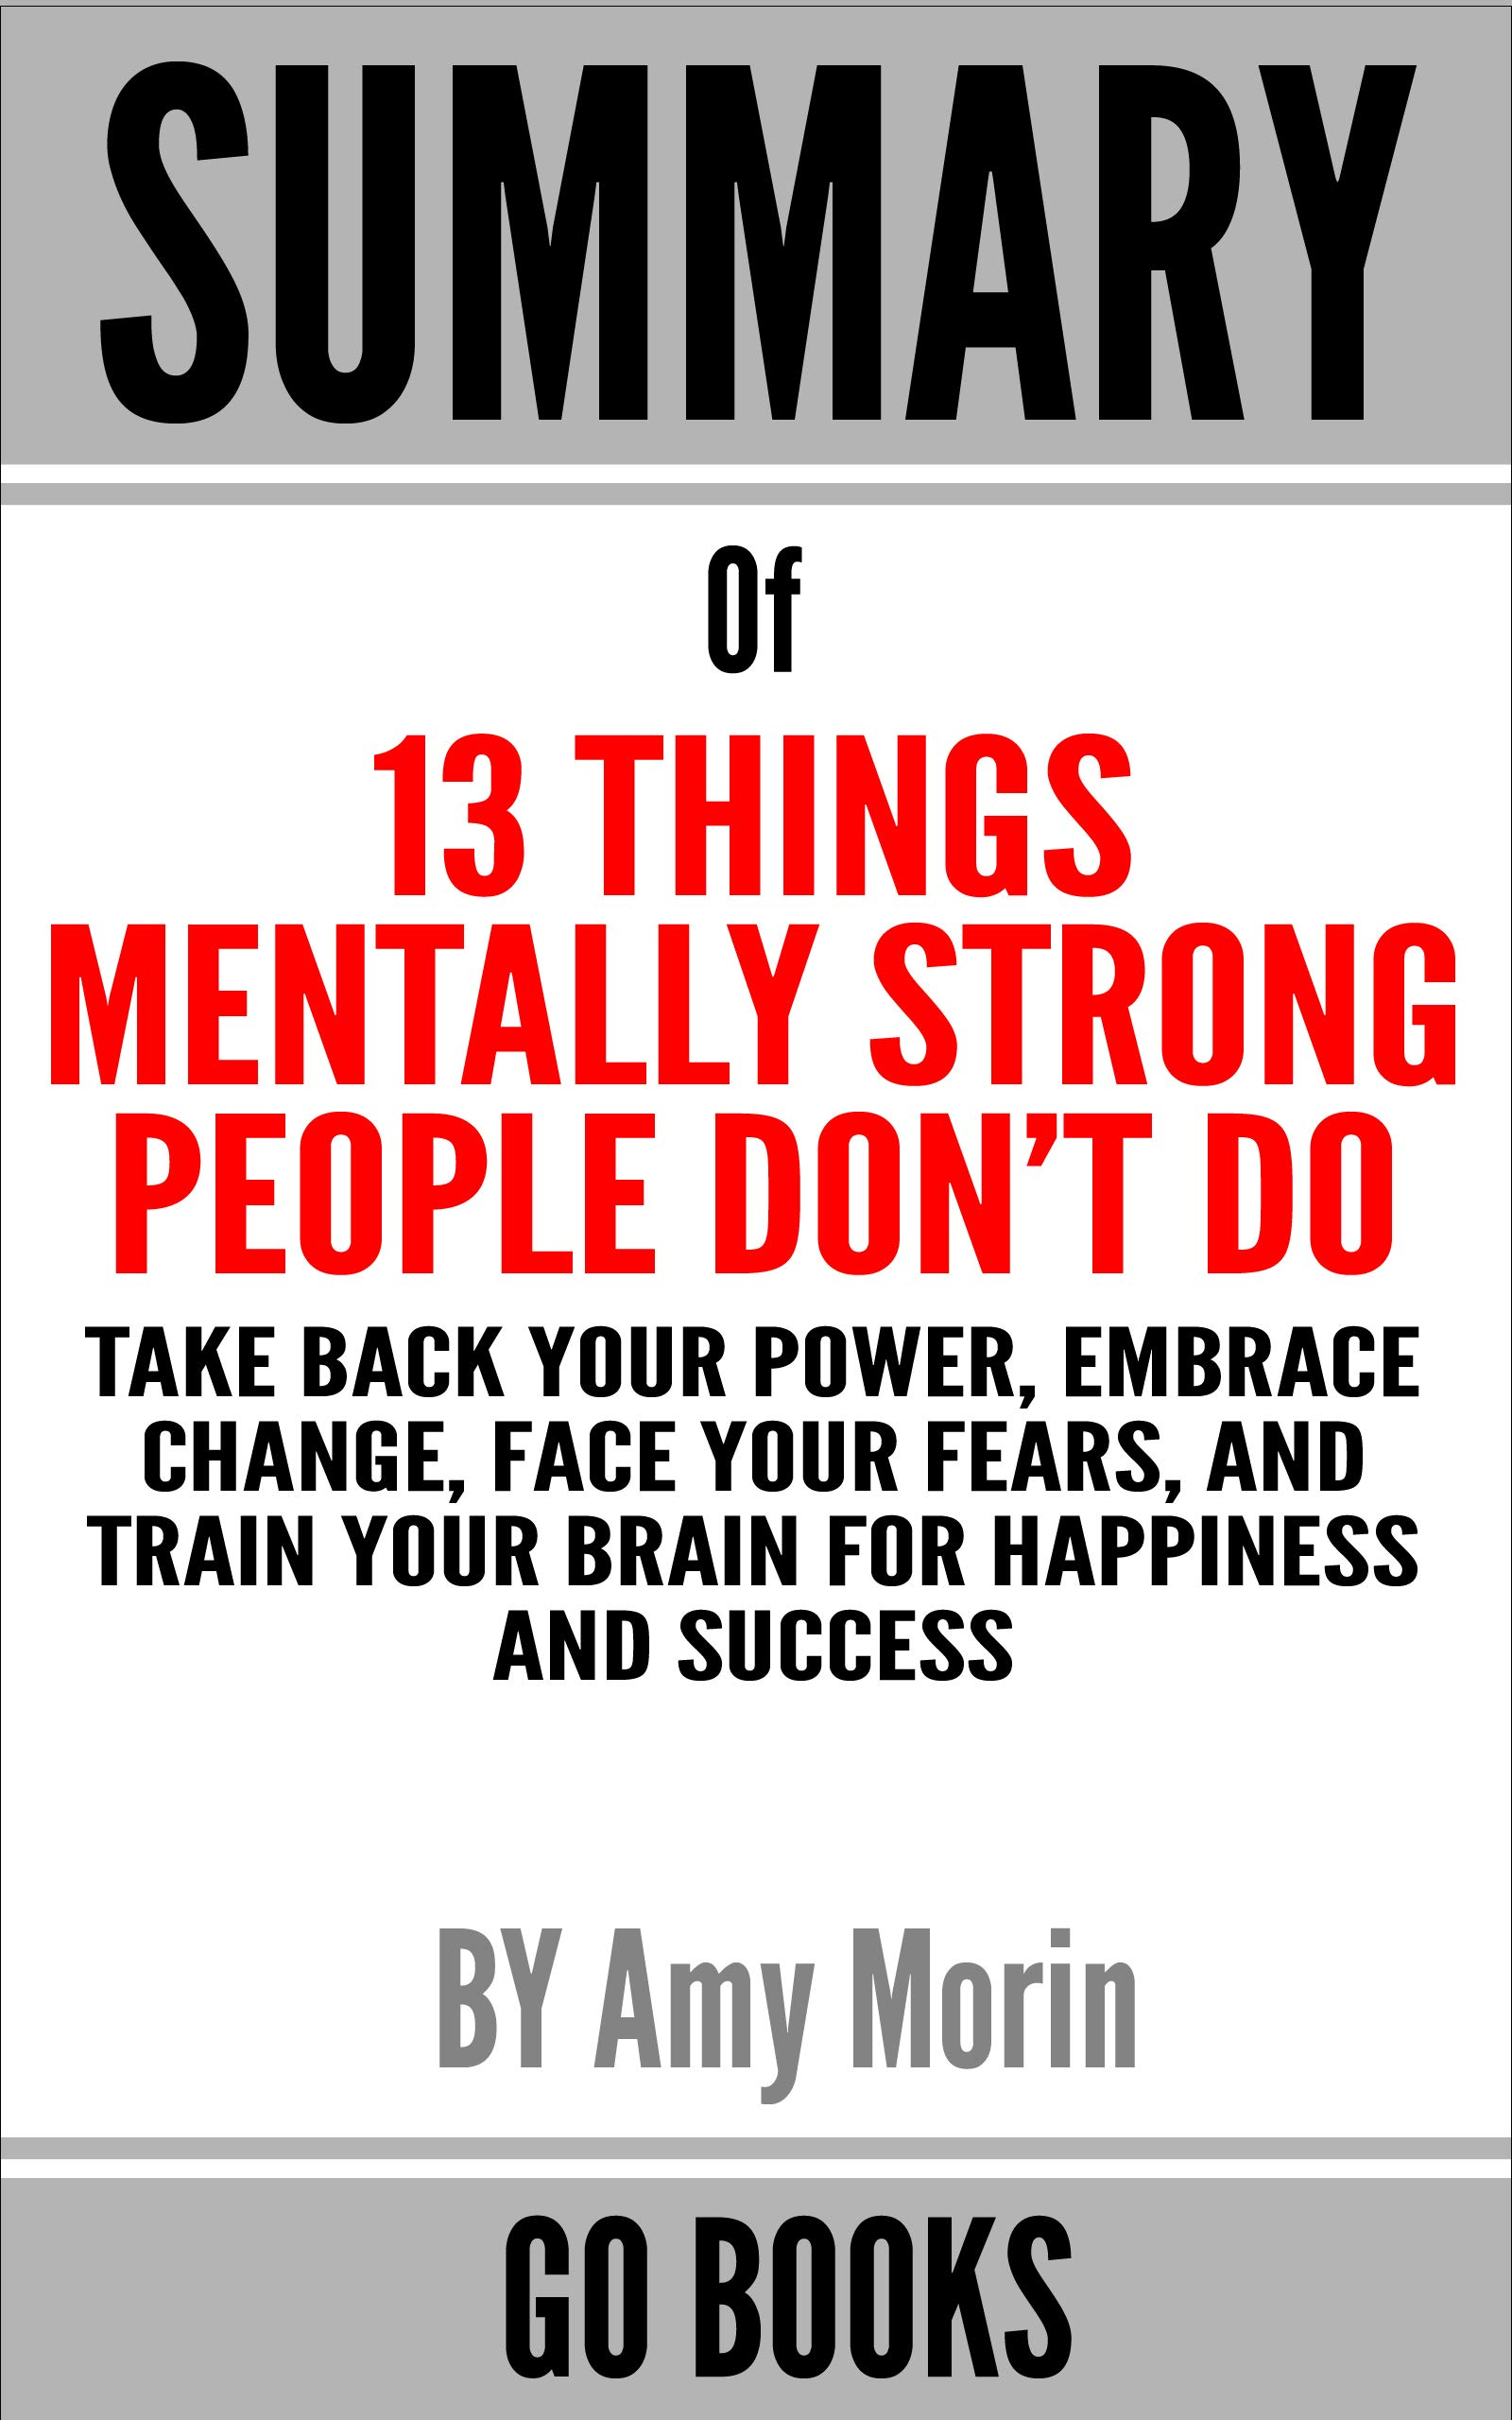 Summary of 13 Things Mentally Strong People Don't Do: Take Back Your Power, Embrace Change, Face Your Fears, and Train Your Brain for Happiness and Success by: Amy Morin | a Go BOOKS Summary Guide